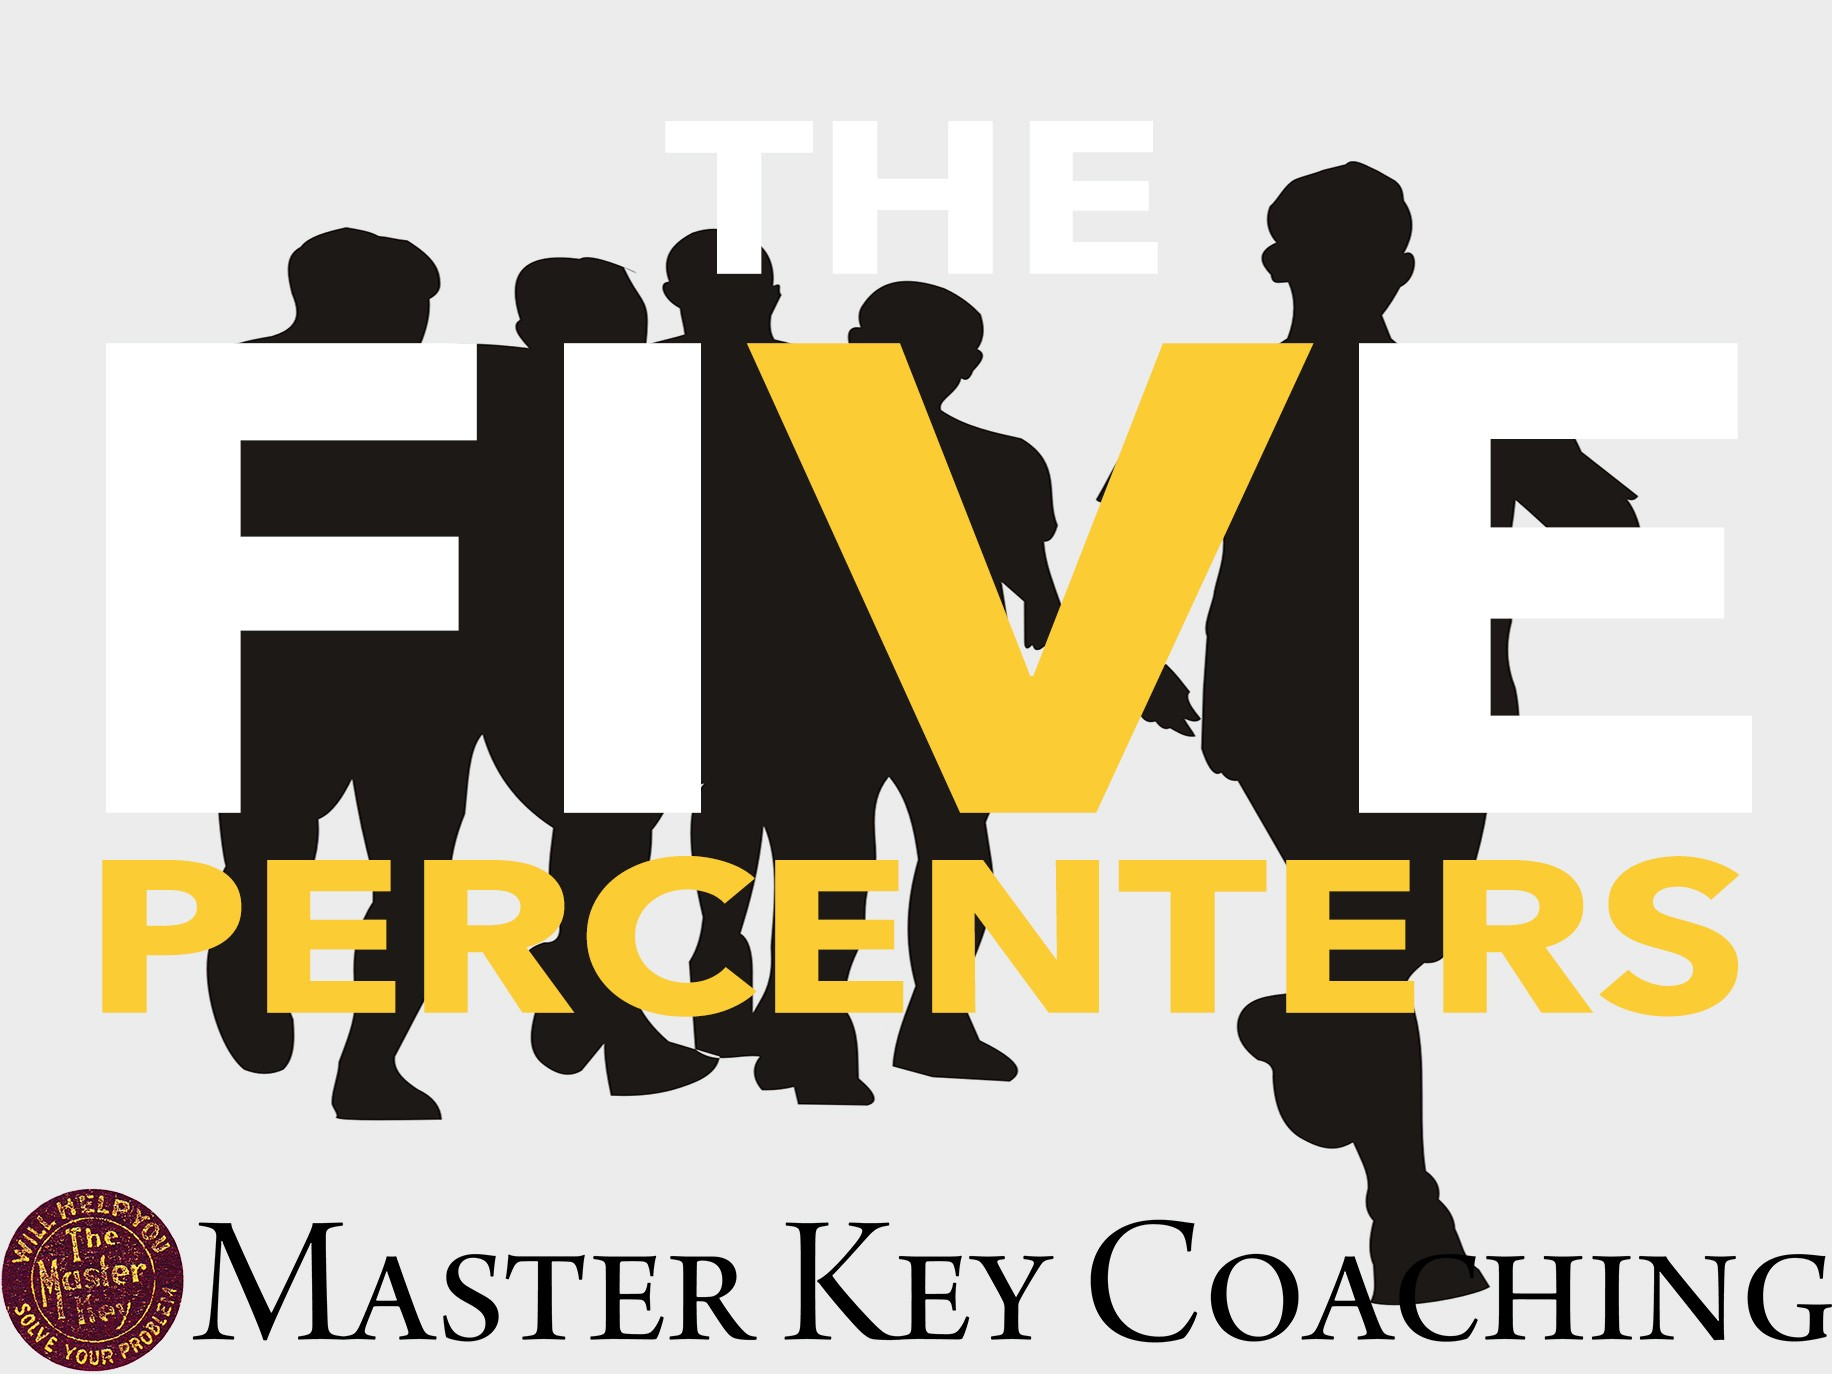 Charles F. Haanel and the Five Percenters (masterkeycoaching.com)